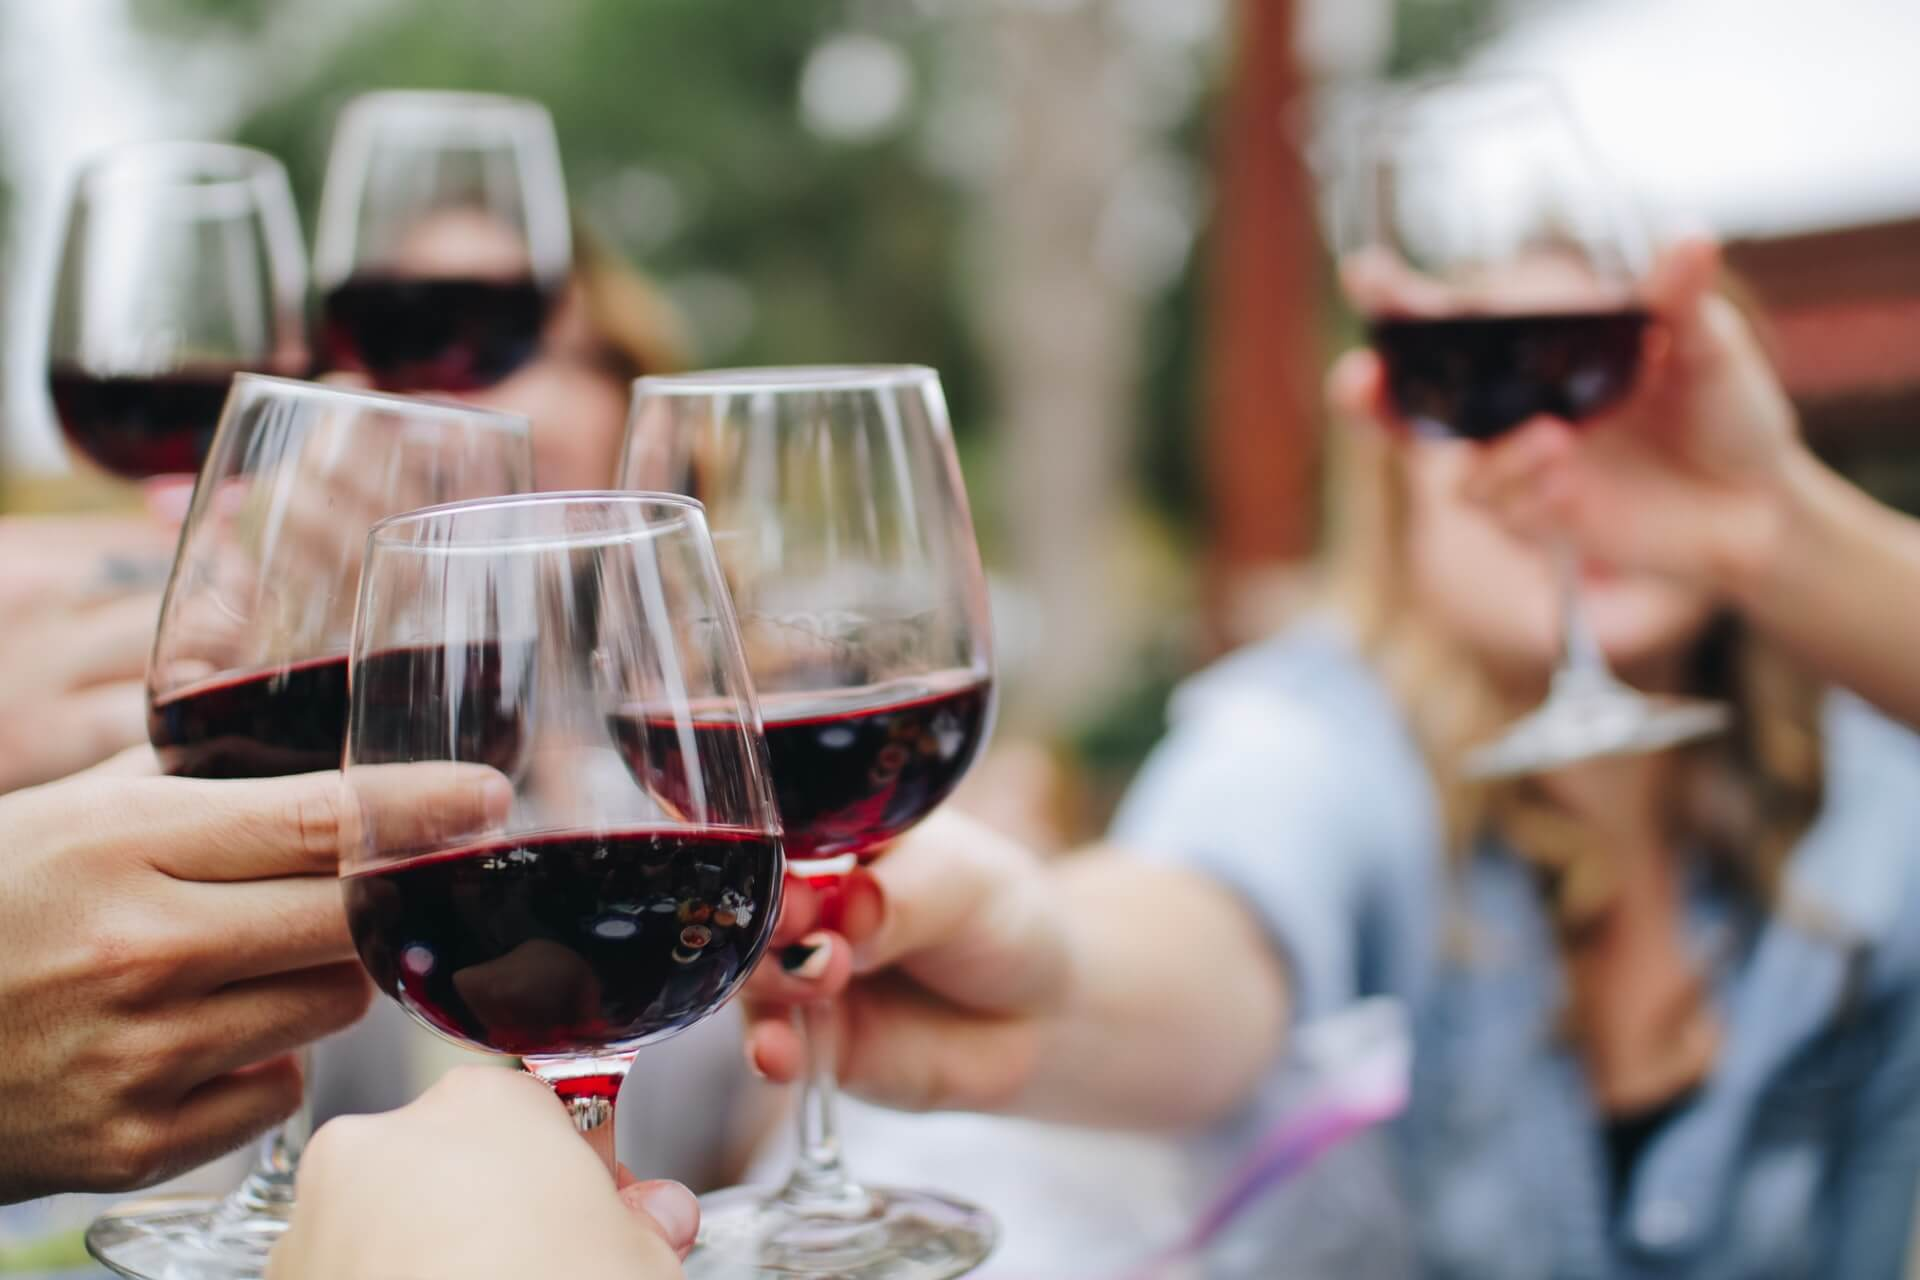 People drinking with wine in glasses